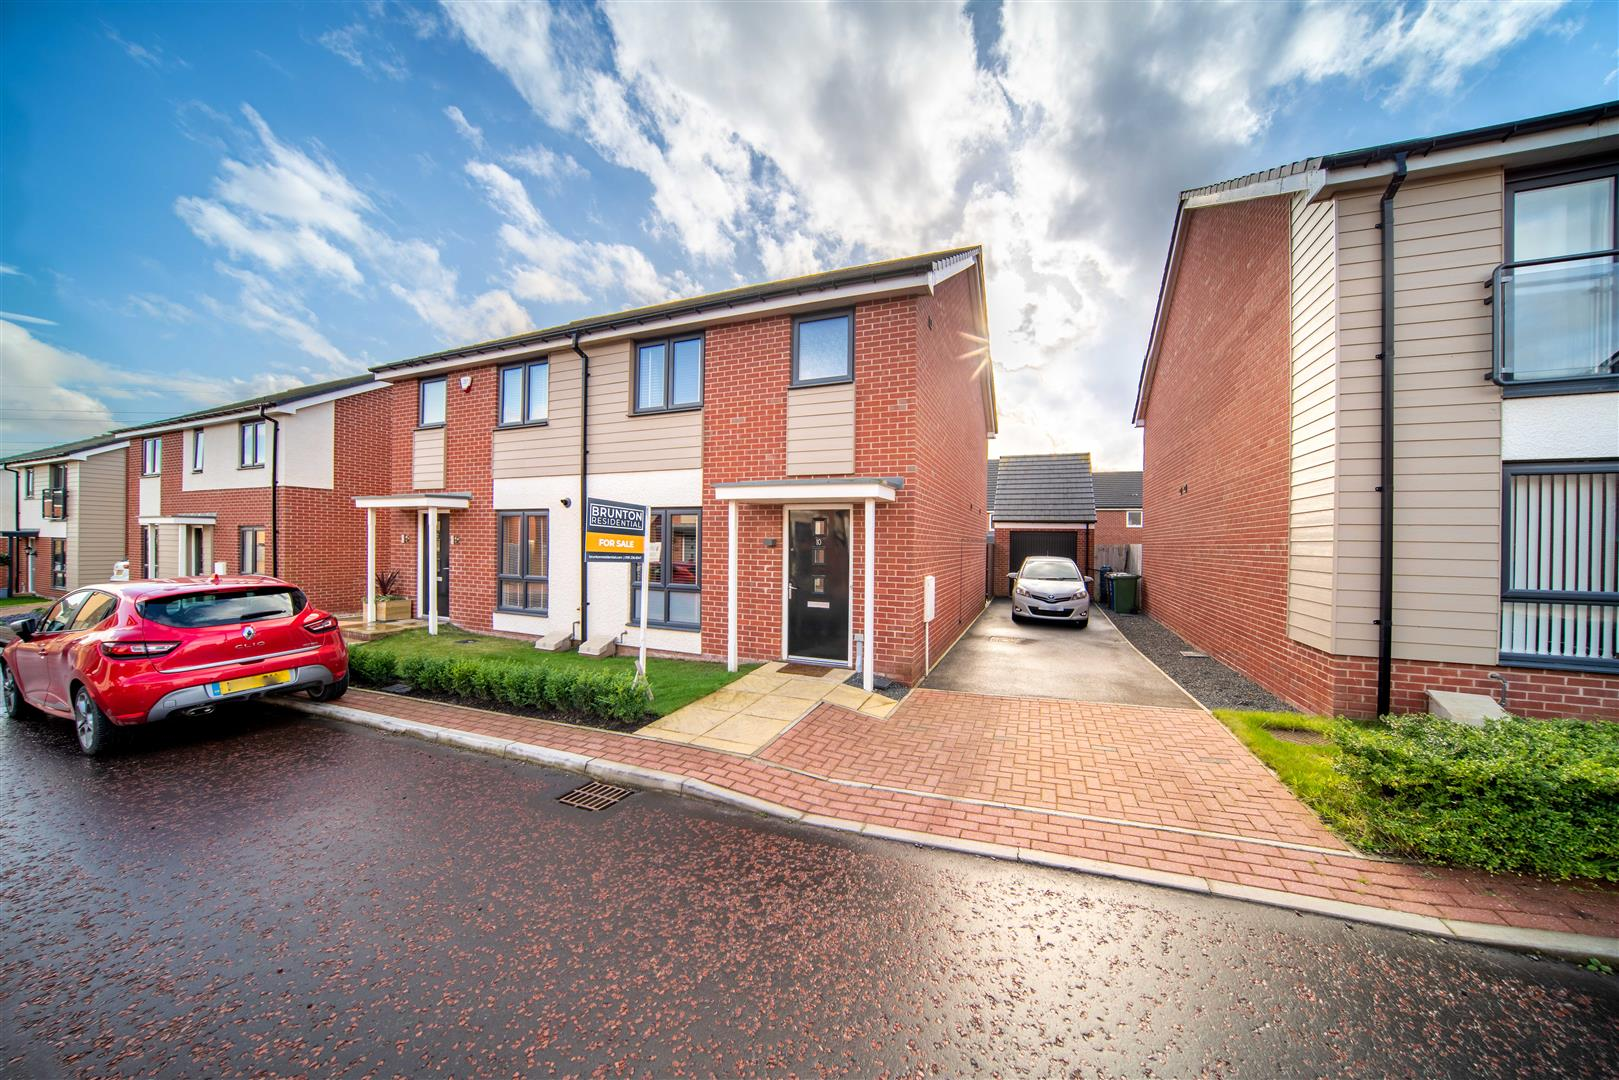 3 bed semi-detached house for sale in Newcastle Upon Tyne, NE13 9DD  - Property Image 1